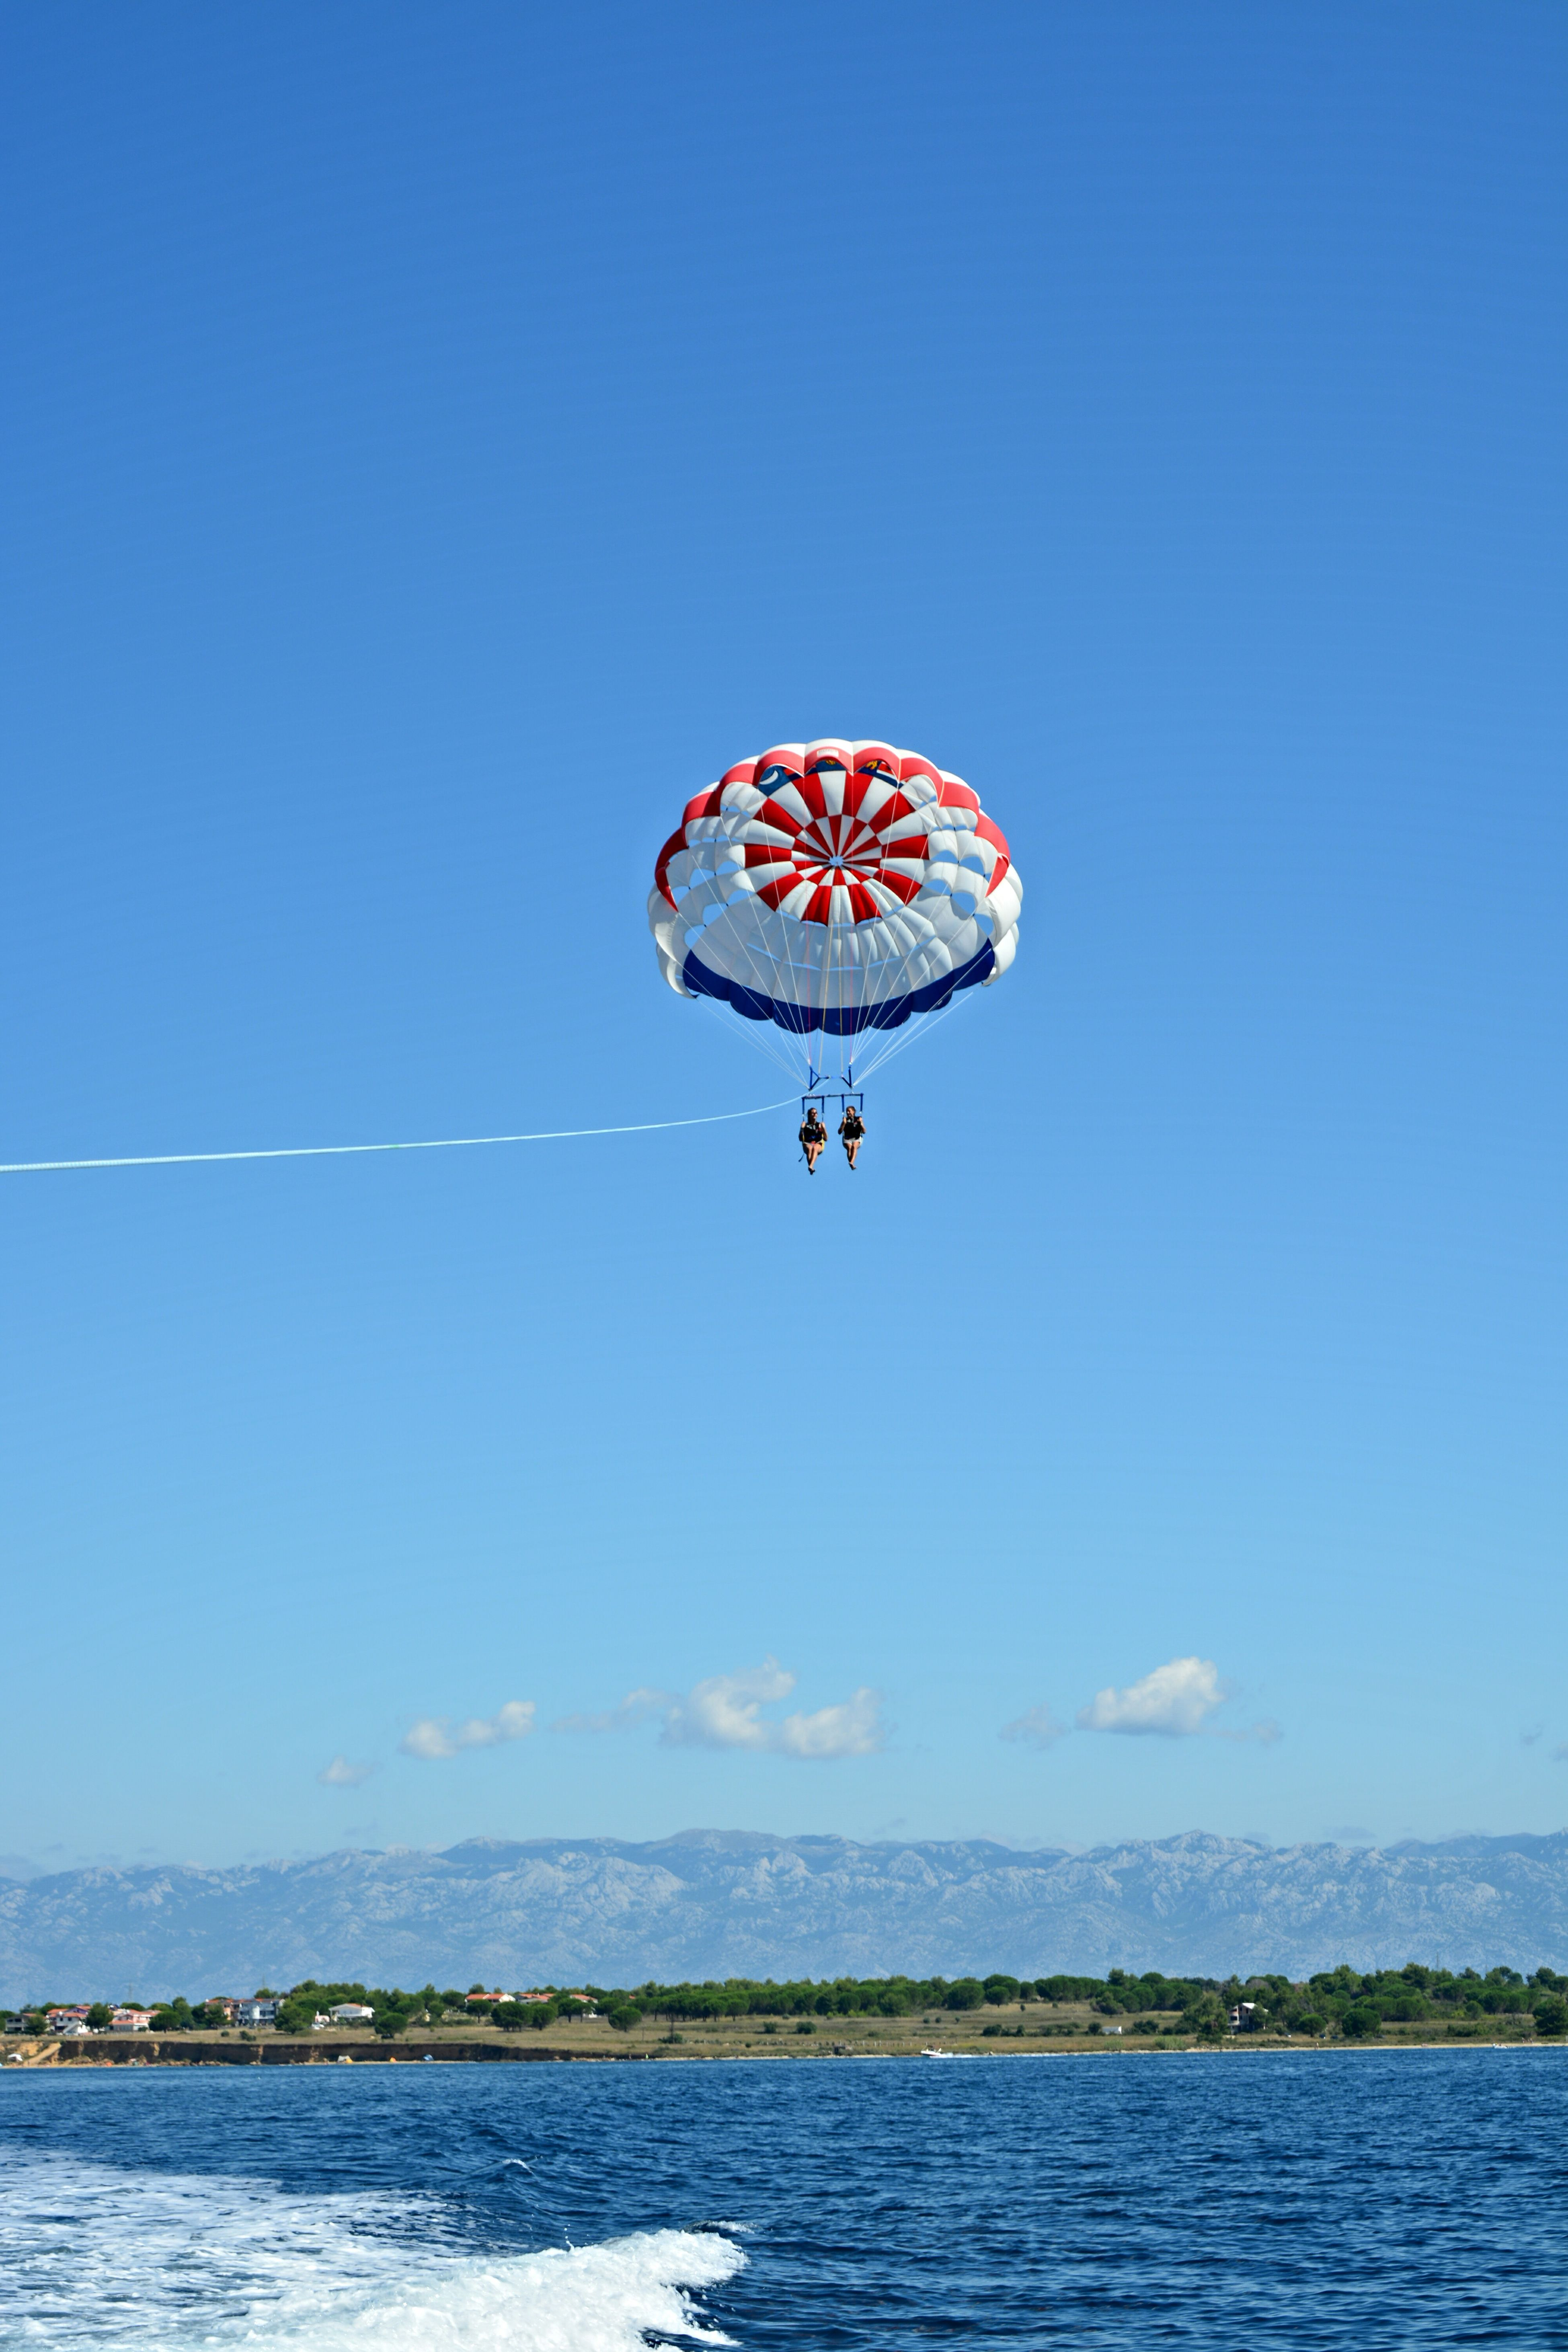 My dream is to fly over the rainbow, so high 🌈Summer2015 Newexperiences Parasailing Friends ❤ Croatia ♡ Paceamorefantasia Volareeee